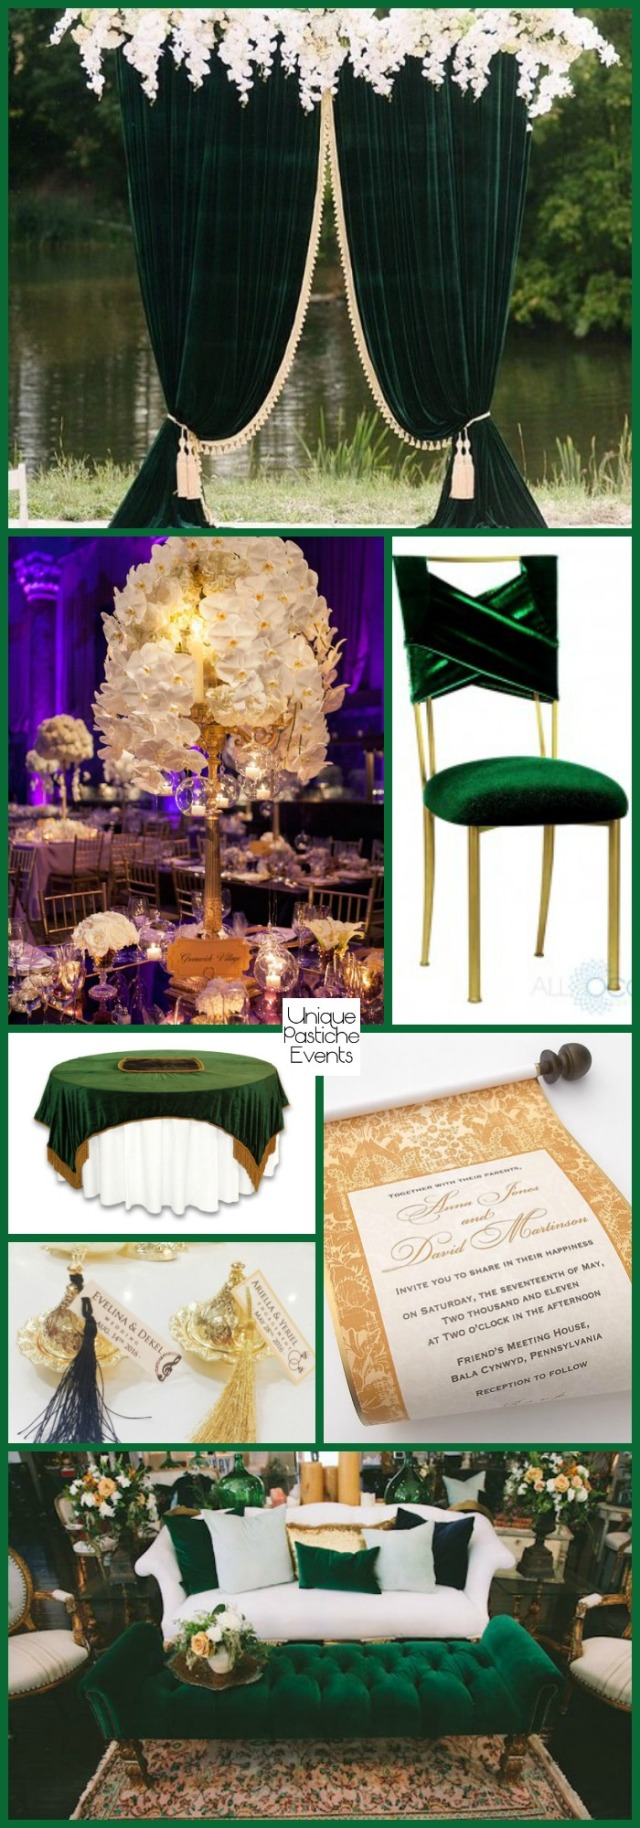 Sophisticated Green Velvet Winter Wedding Decor with Gold